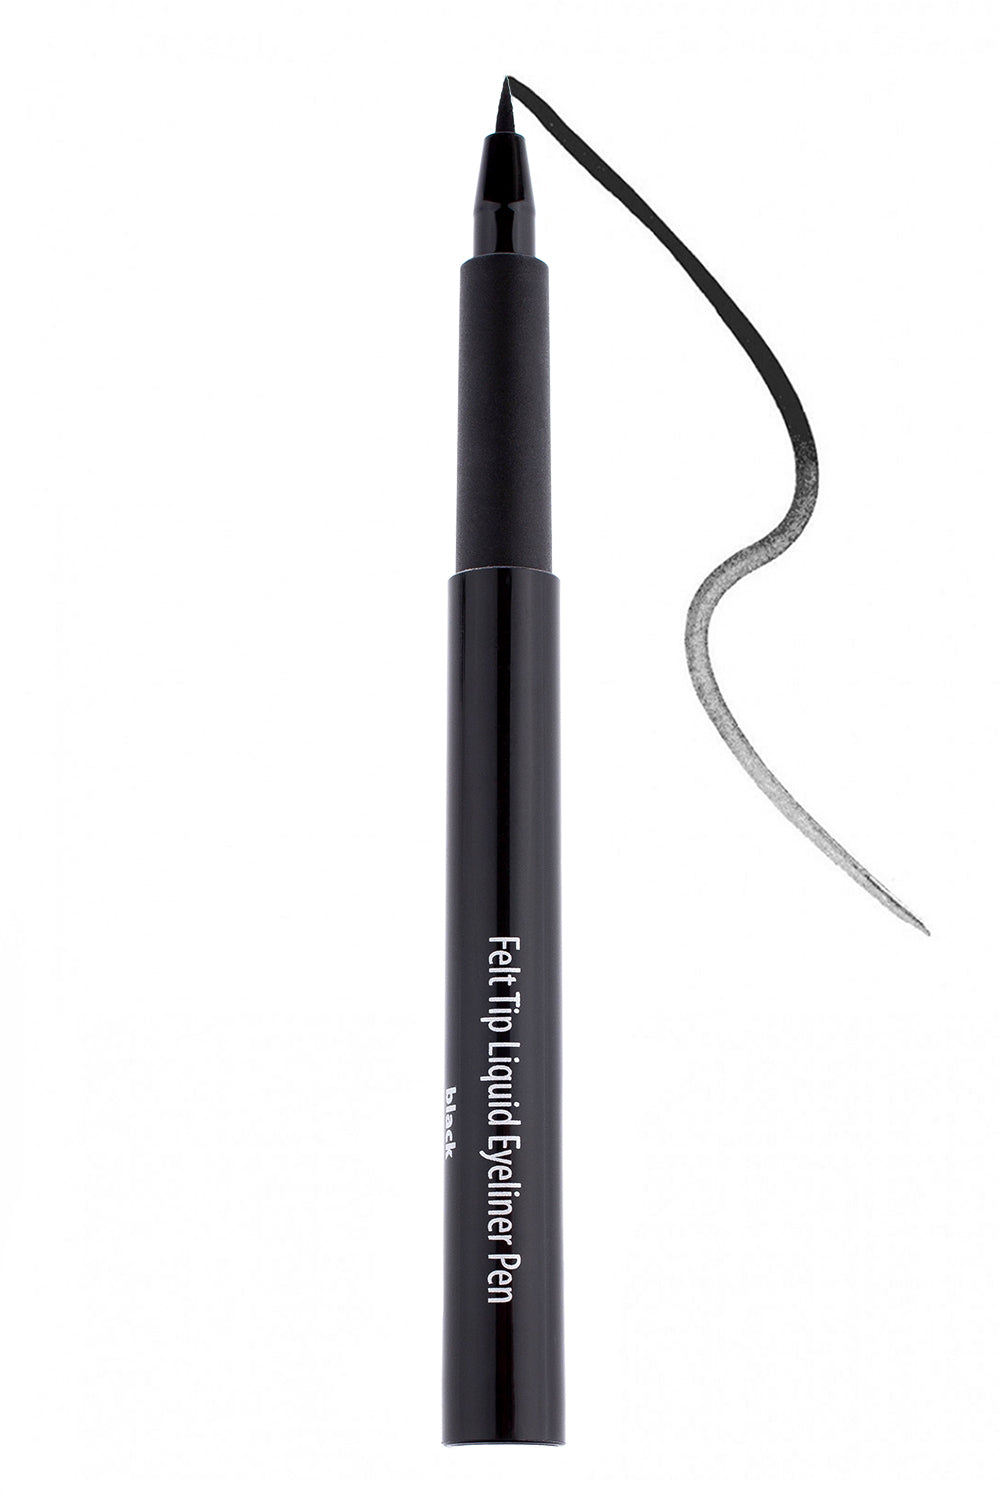 Type 4 Felt Tip Eye Liner - Black